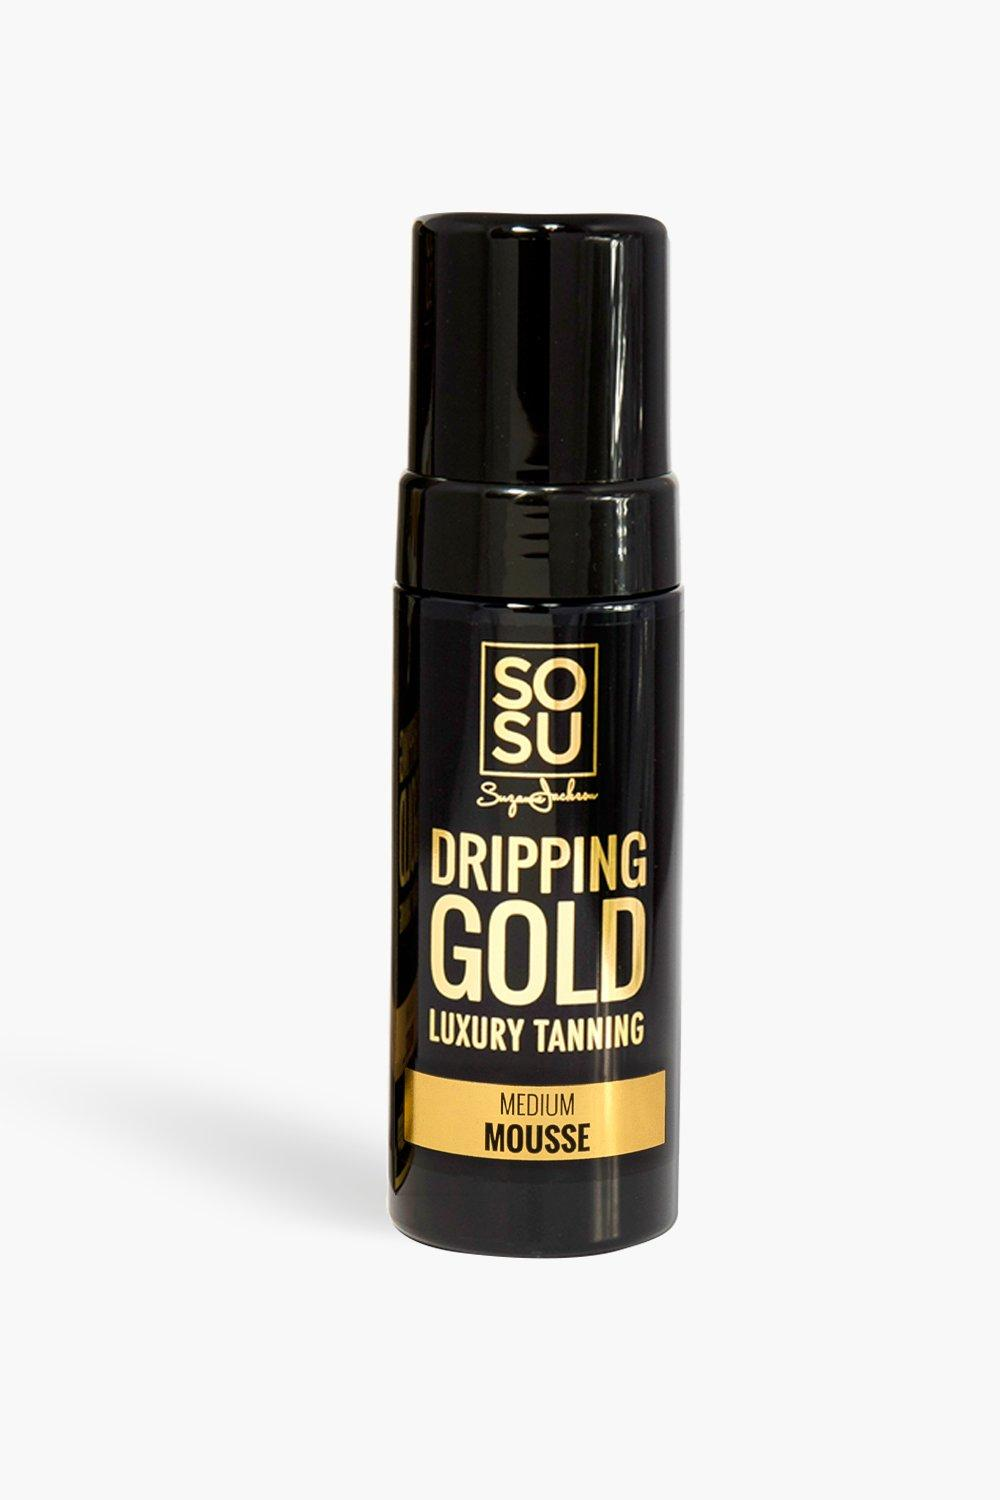 Image of Mousse media Dripping Gold SOSU, Nero